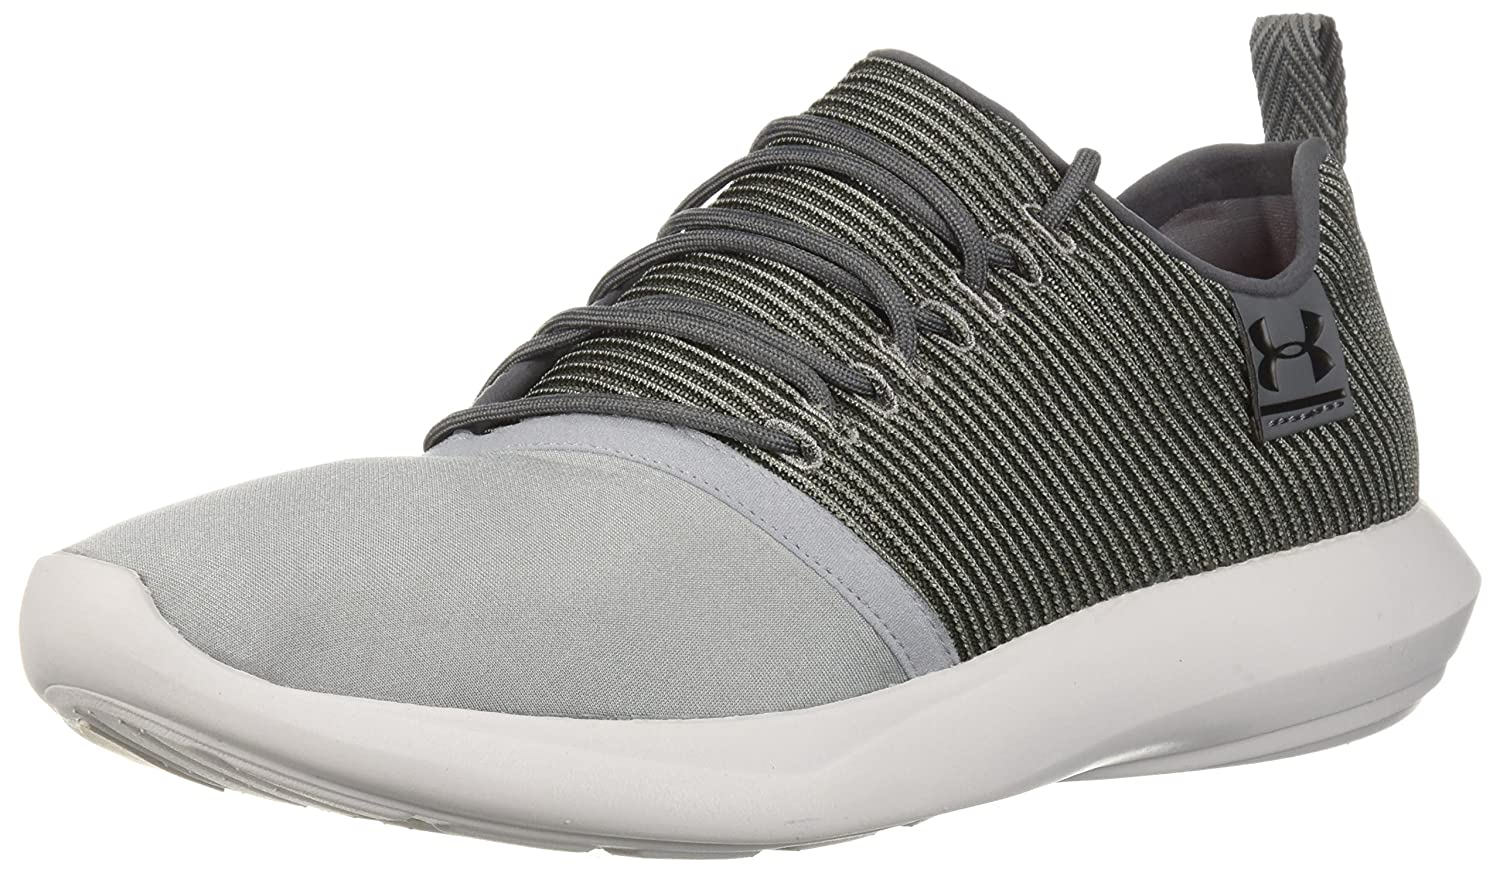 Under Armour Women's Charged All-Day Sneaker B0716Z82RK 6 M US|Overcast Gray (101)/Rhino Gray